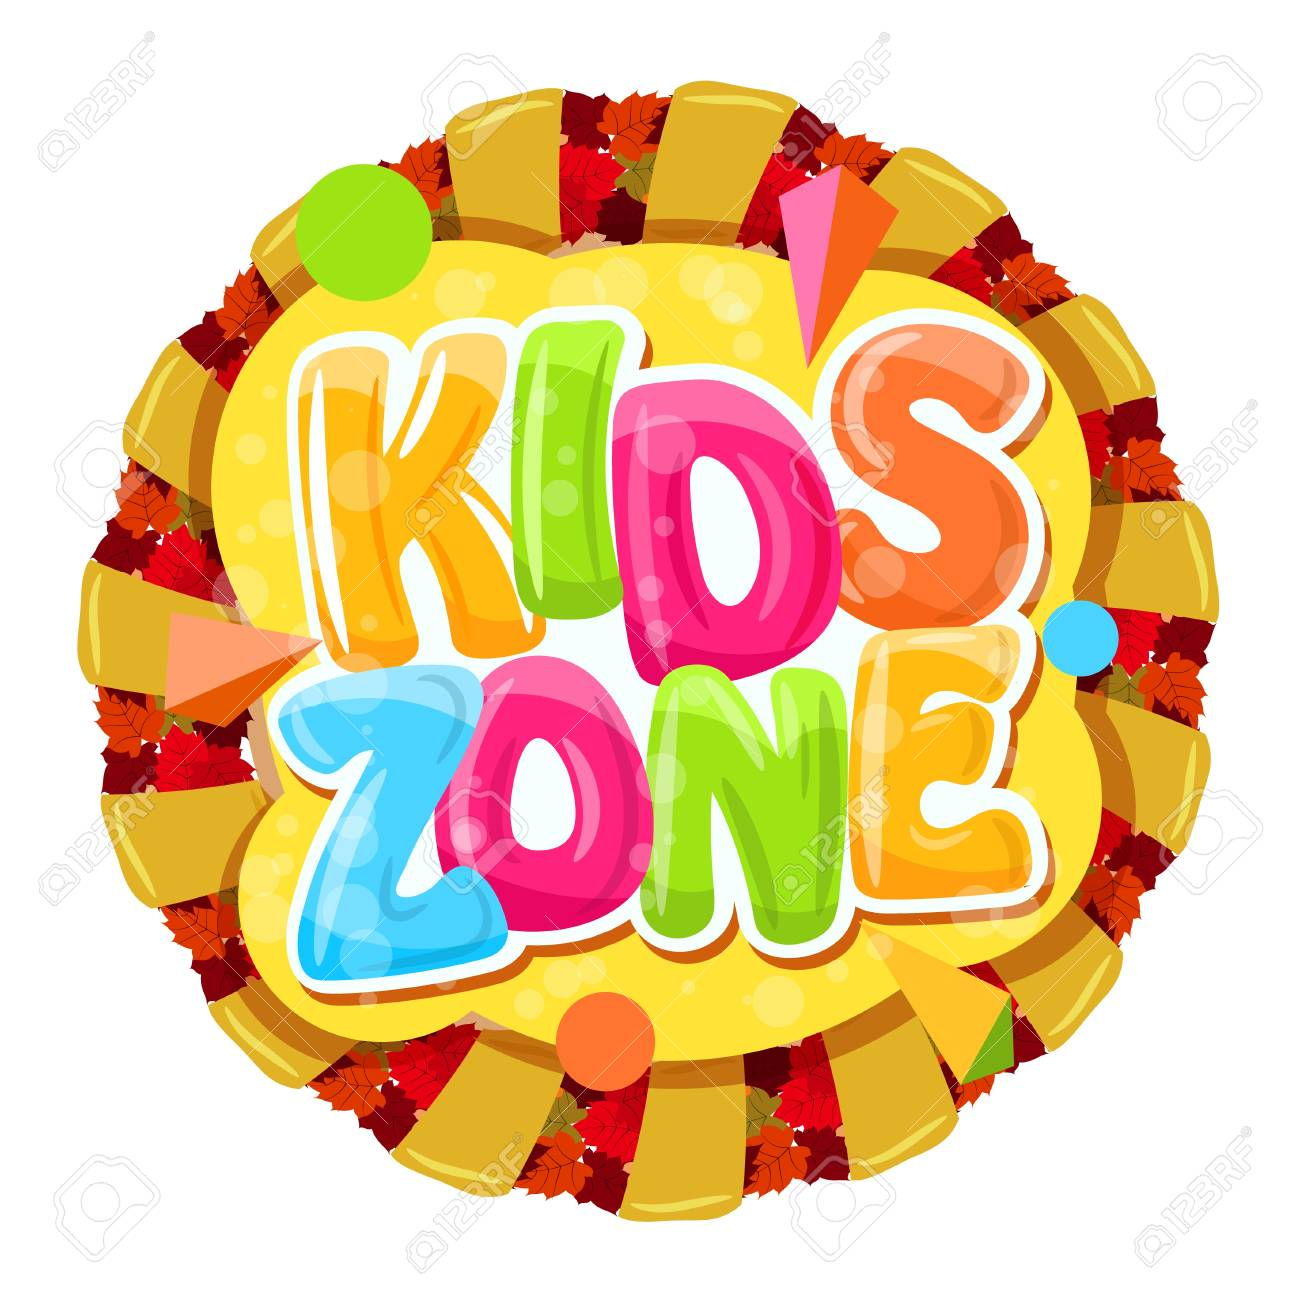 Round Cartoon Logo For Kids Room. Colorful Bubble Letters For The Childrenu0027s  Playroom. The